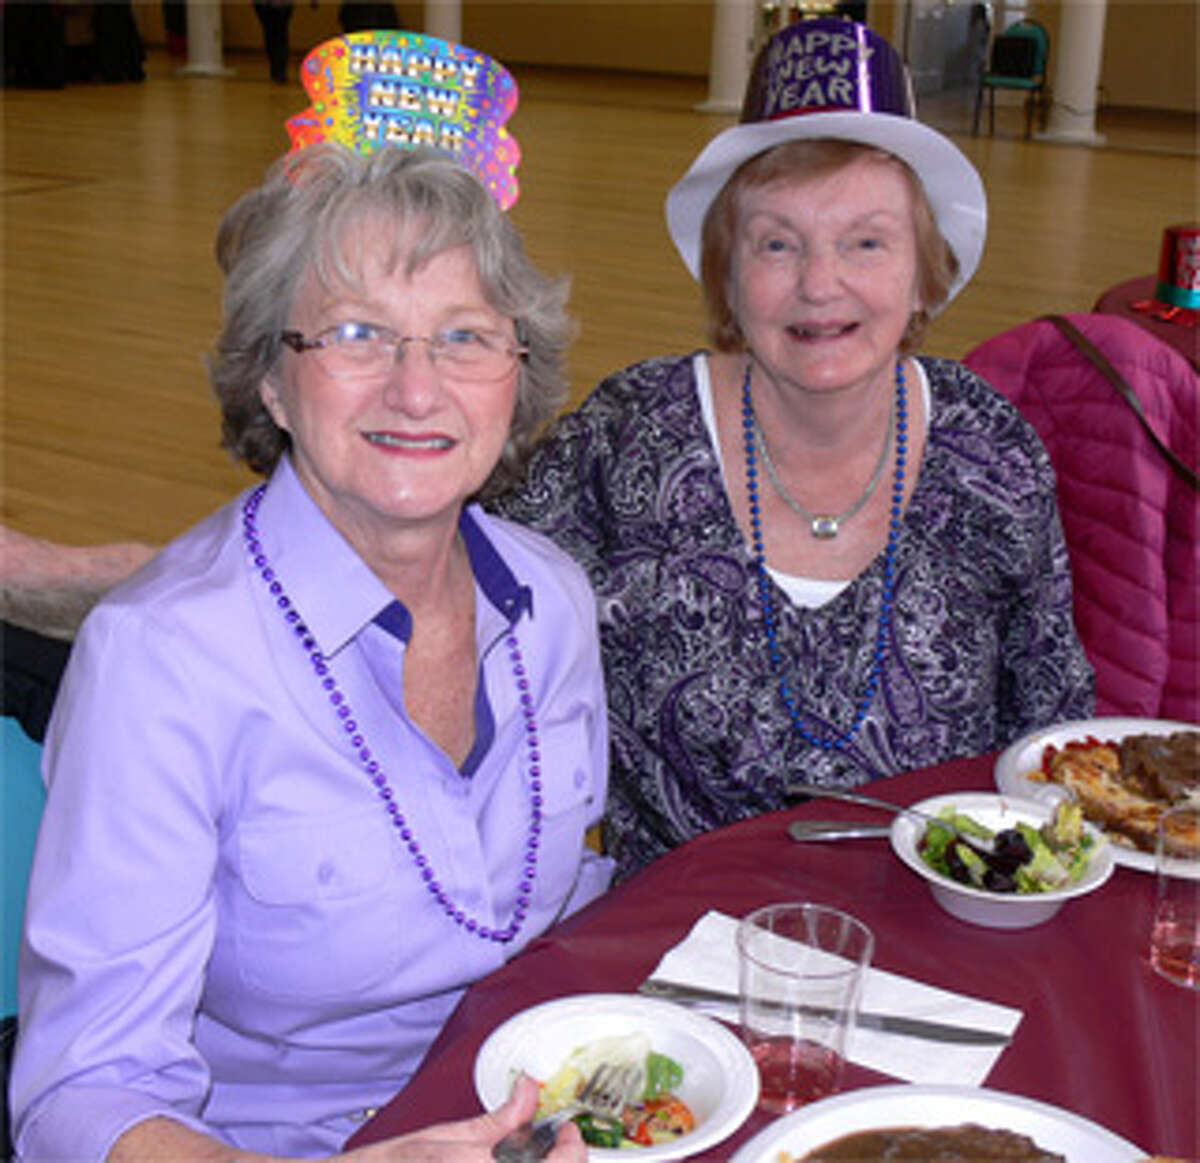 Mary Ann LeBlanc, left, and Edna Kerkes, both of Shelton, take a break from their meal while wearing their party hats at the Shelton Senior Center's New Year's gathering.